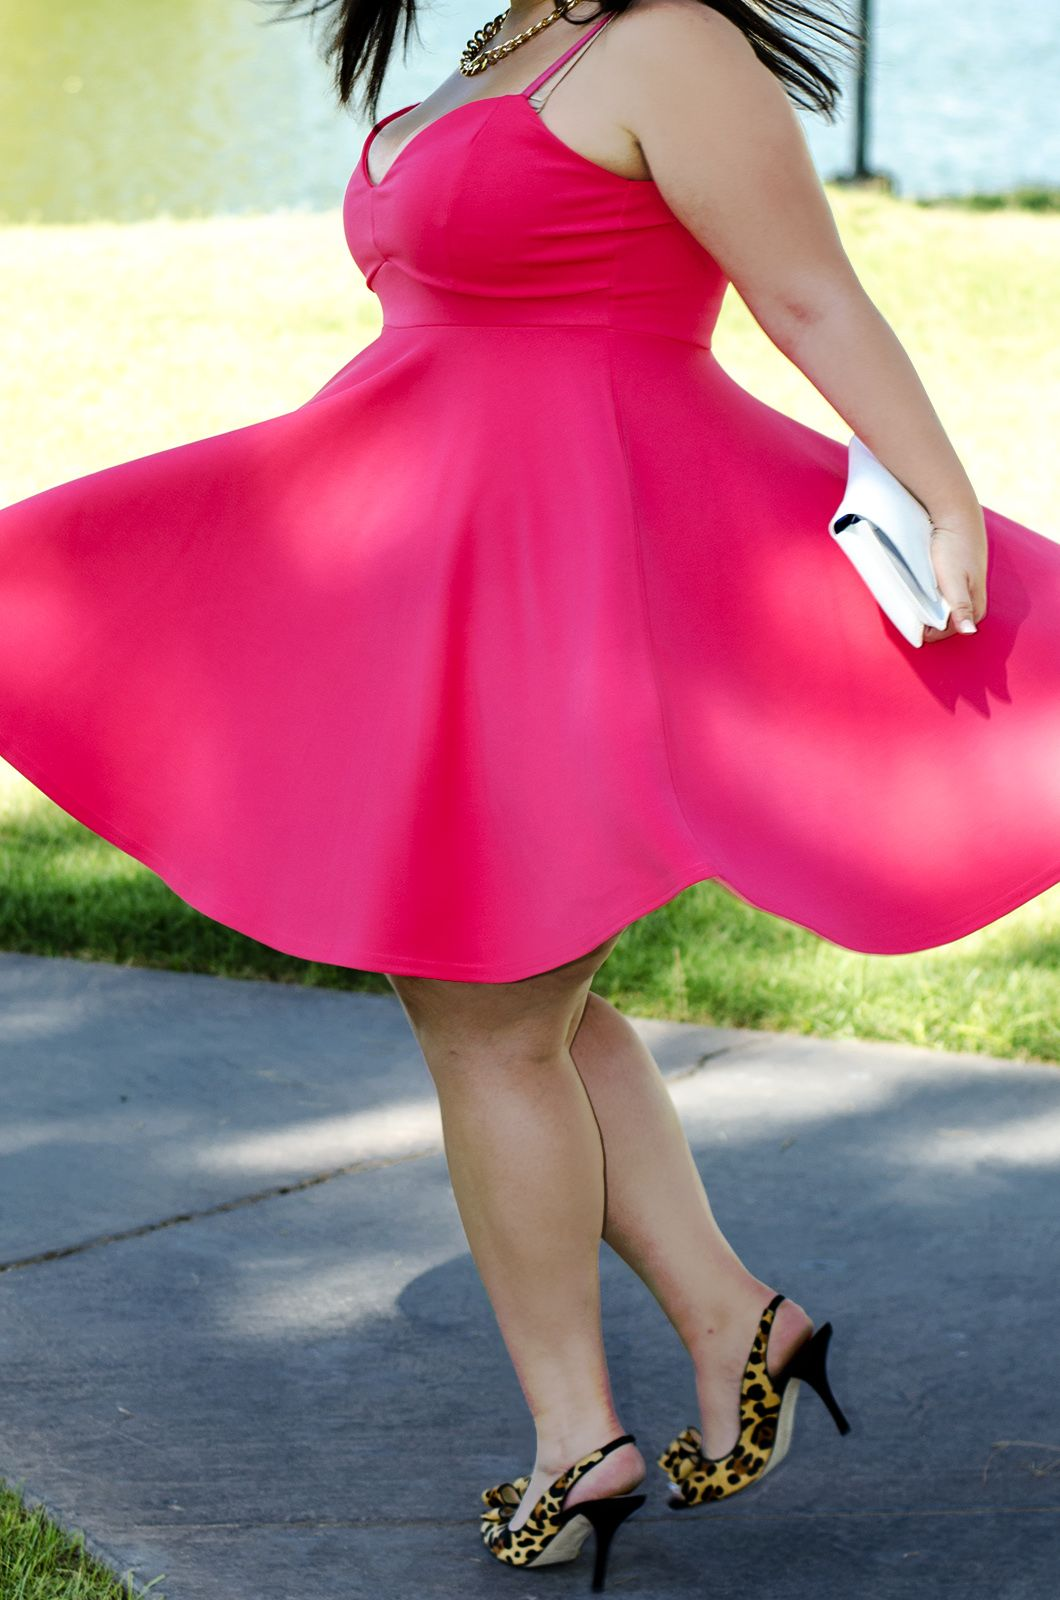 f480c2803d59 plus size summer dress pink dress sexy dress crystal coons boohoo sometimes  glam